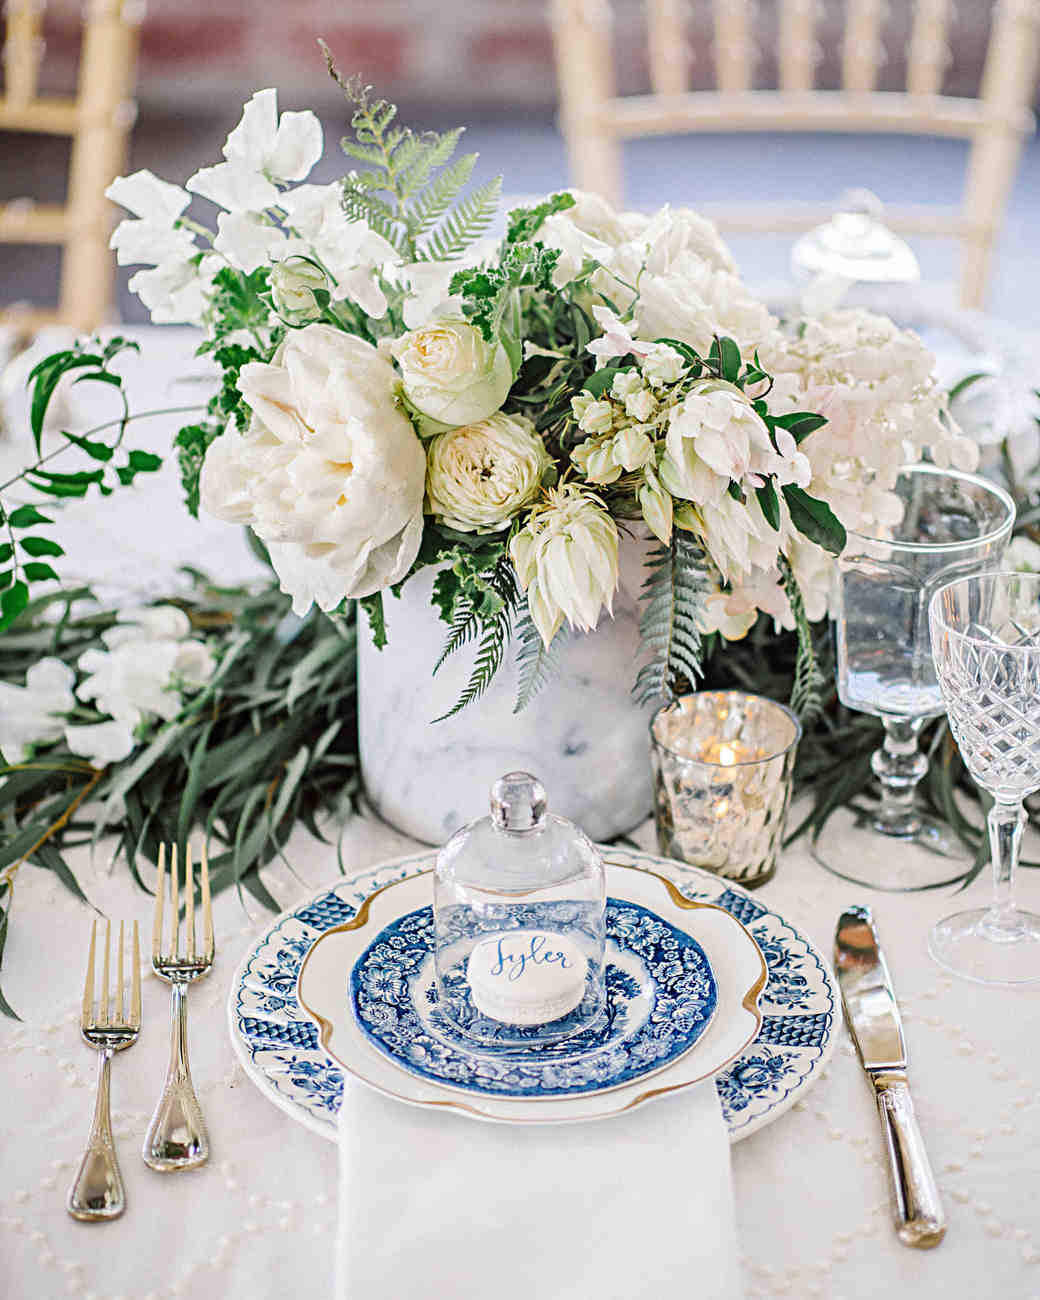 79 White Wedding Centerpieces | Martha Stewart Weddings